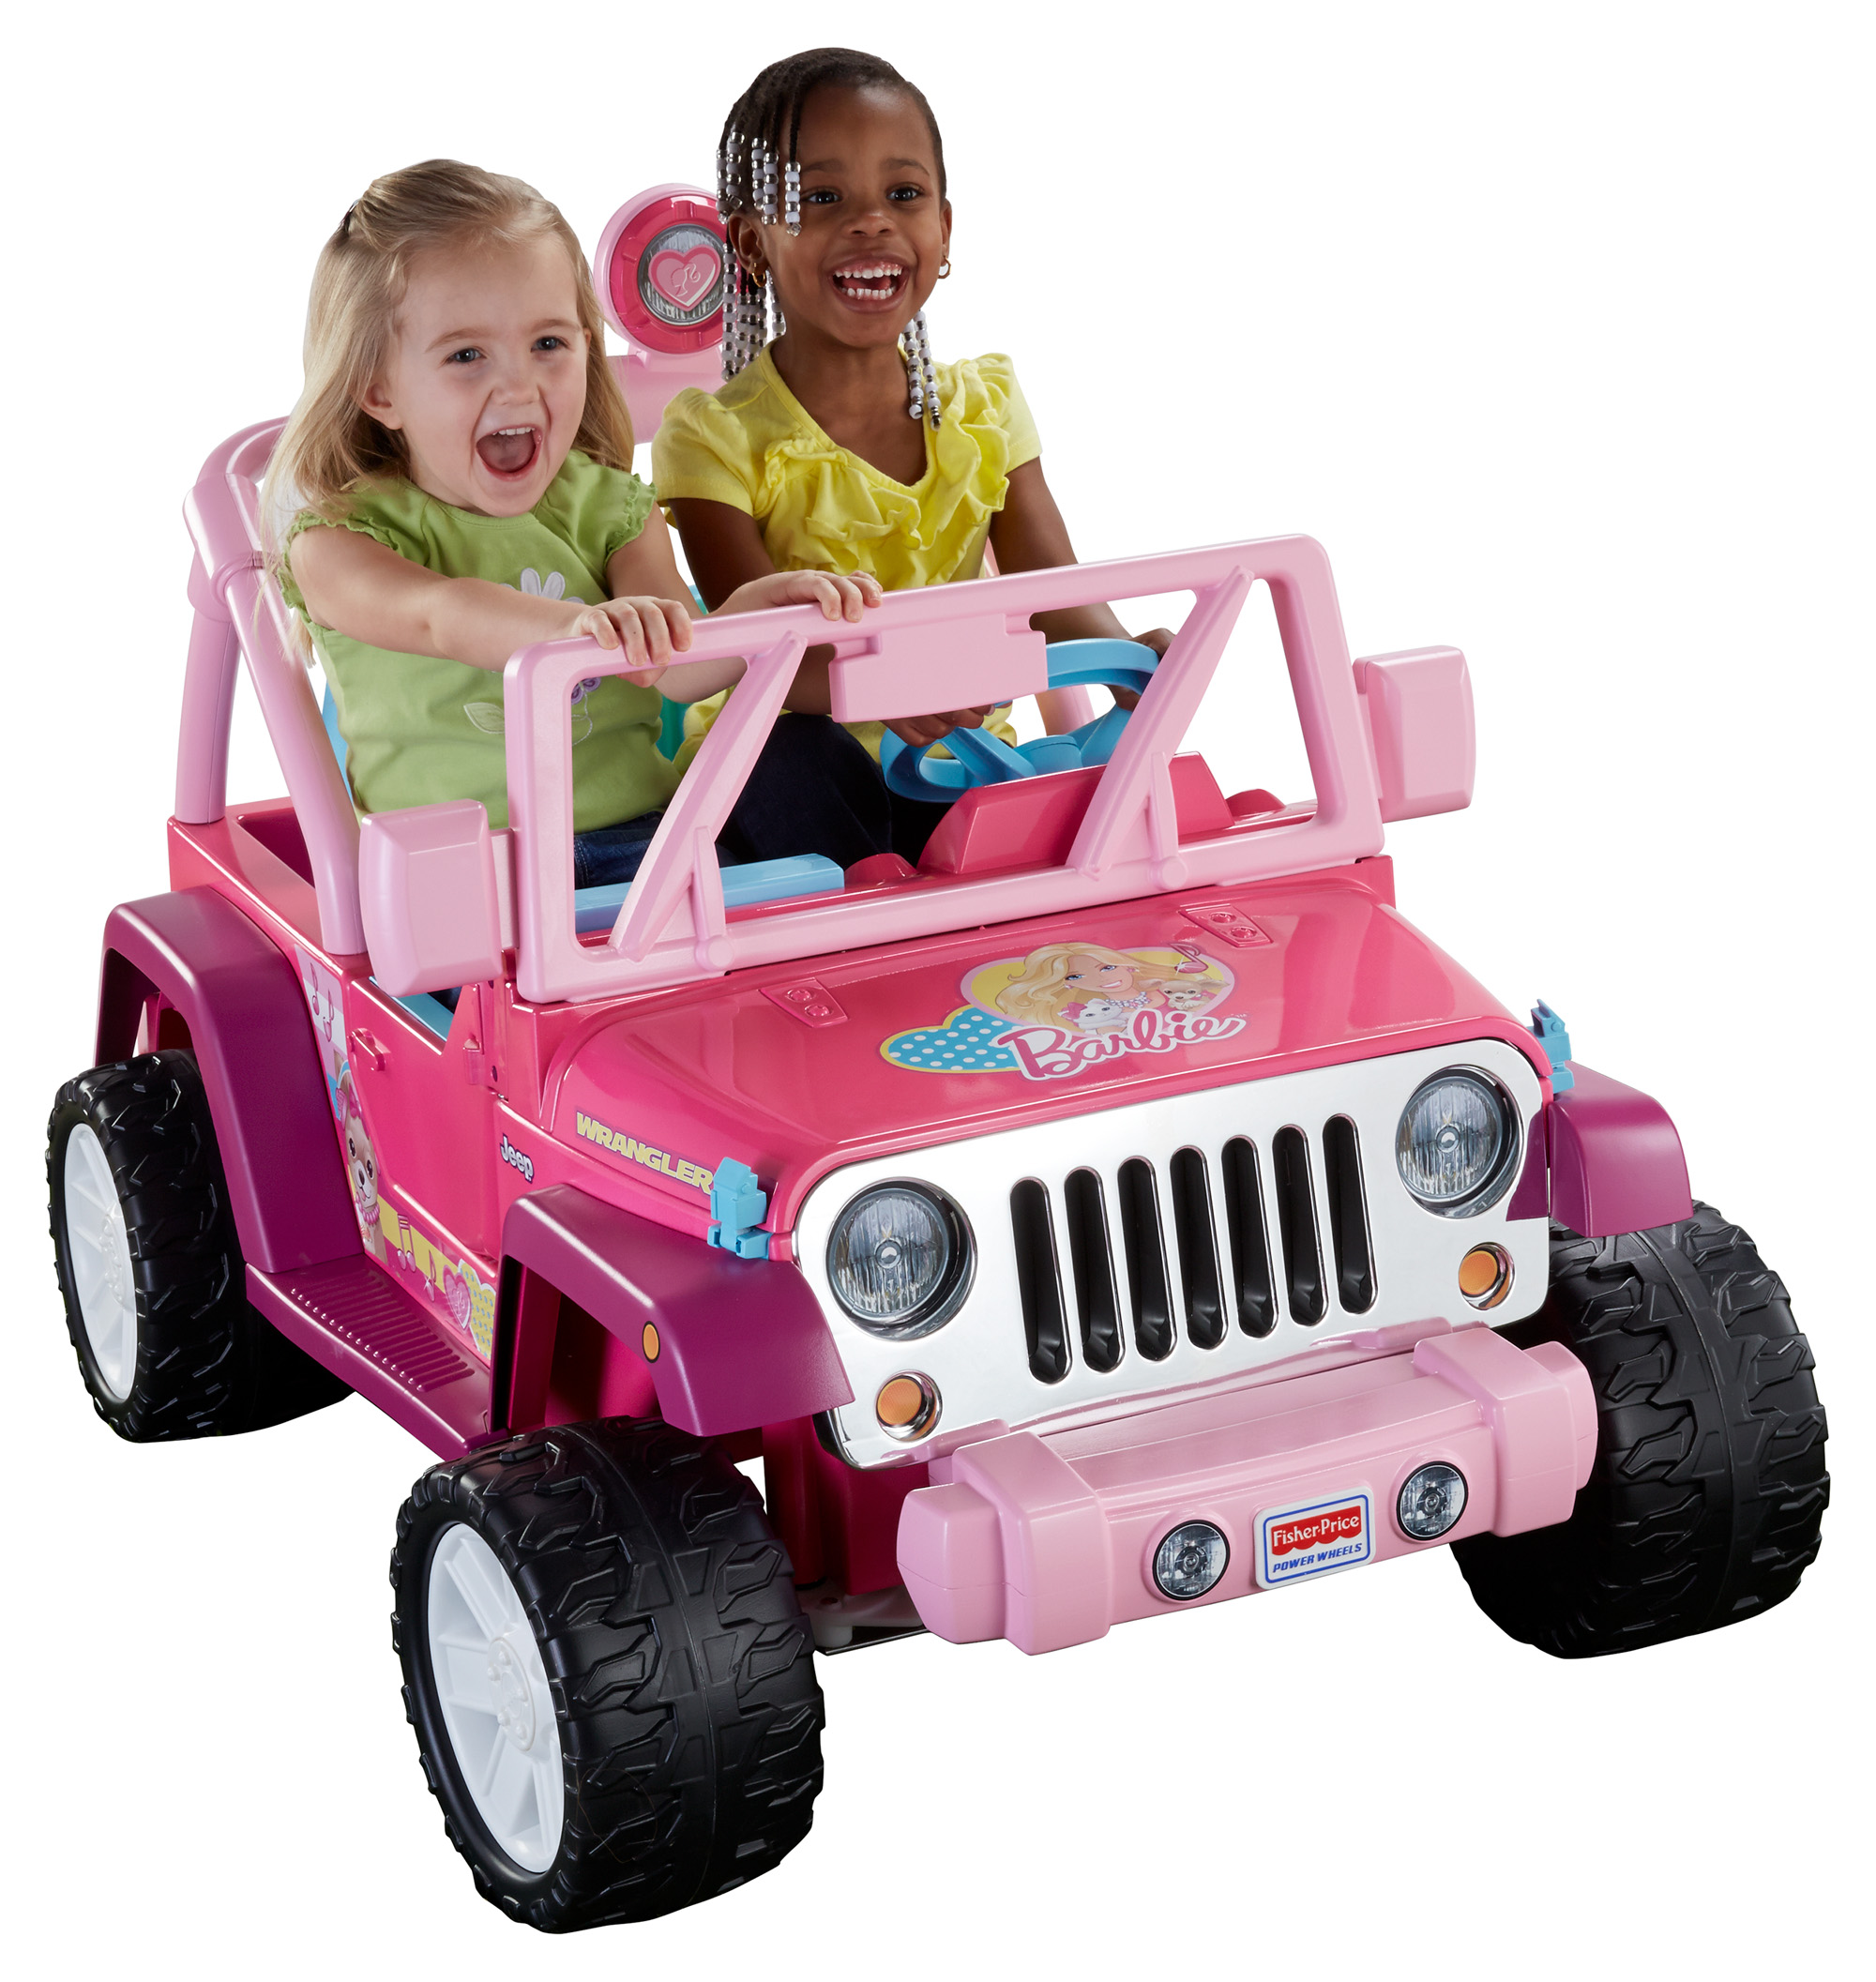 Power Wheels Barbie Jammin' Jeep Wrangler 12-Volt Battery-Powered Ride-On, Pink